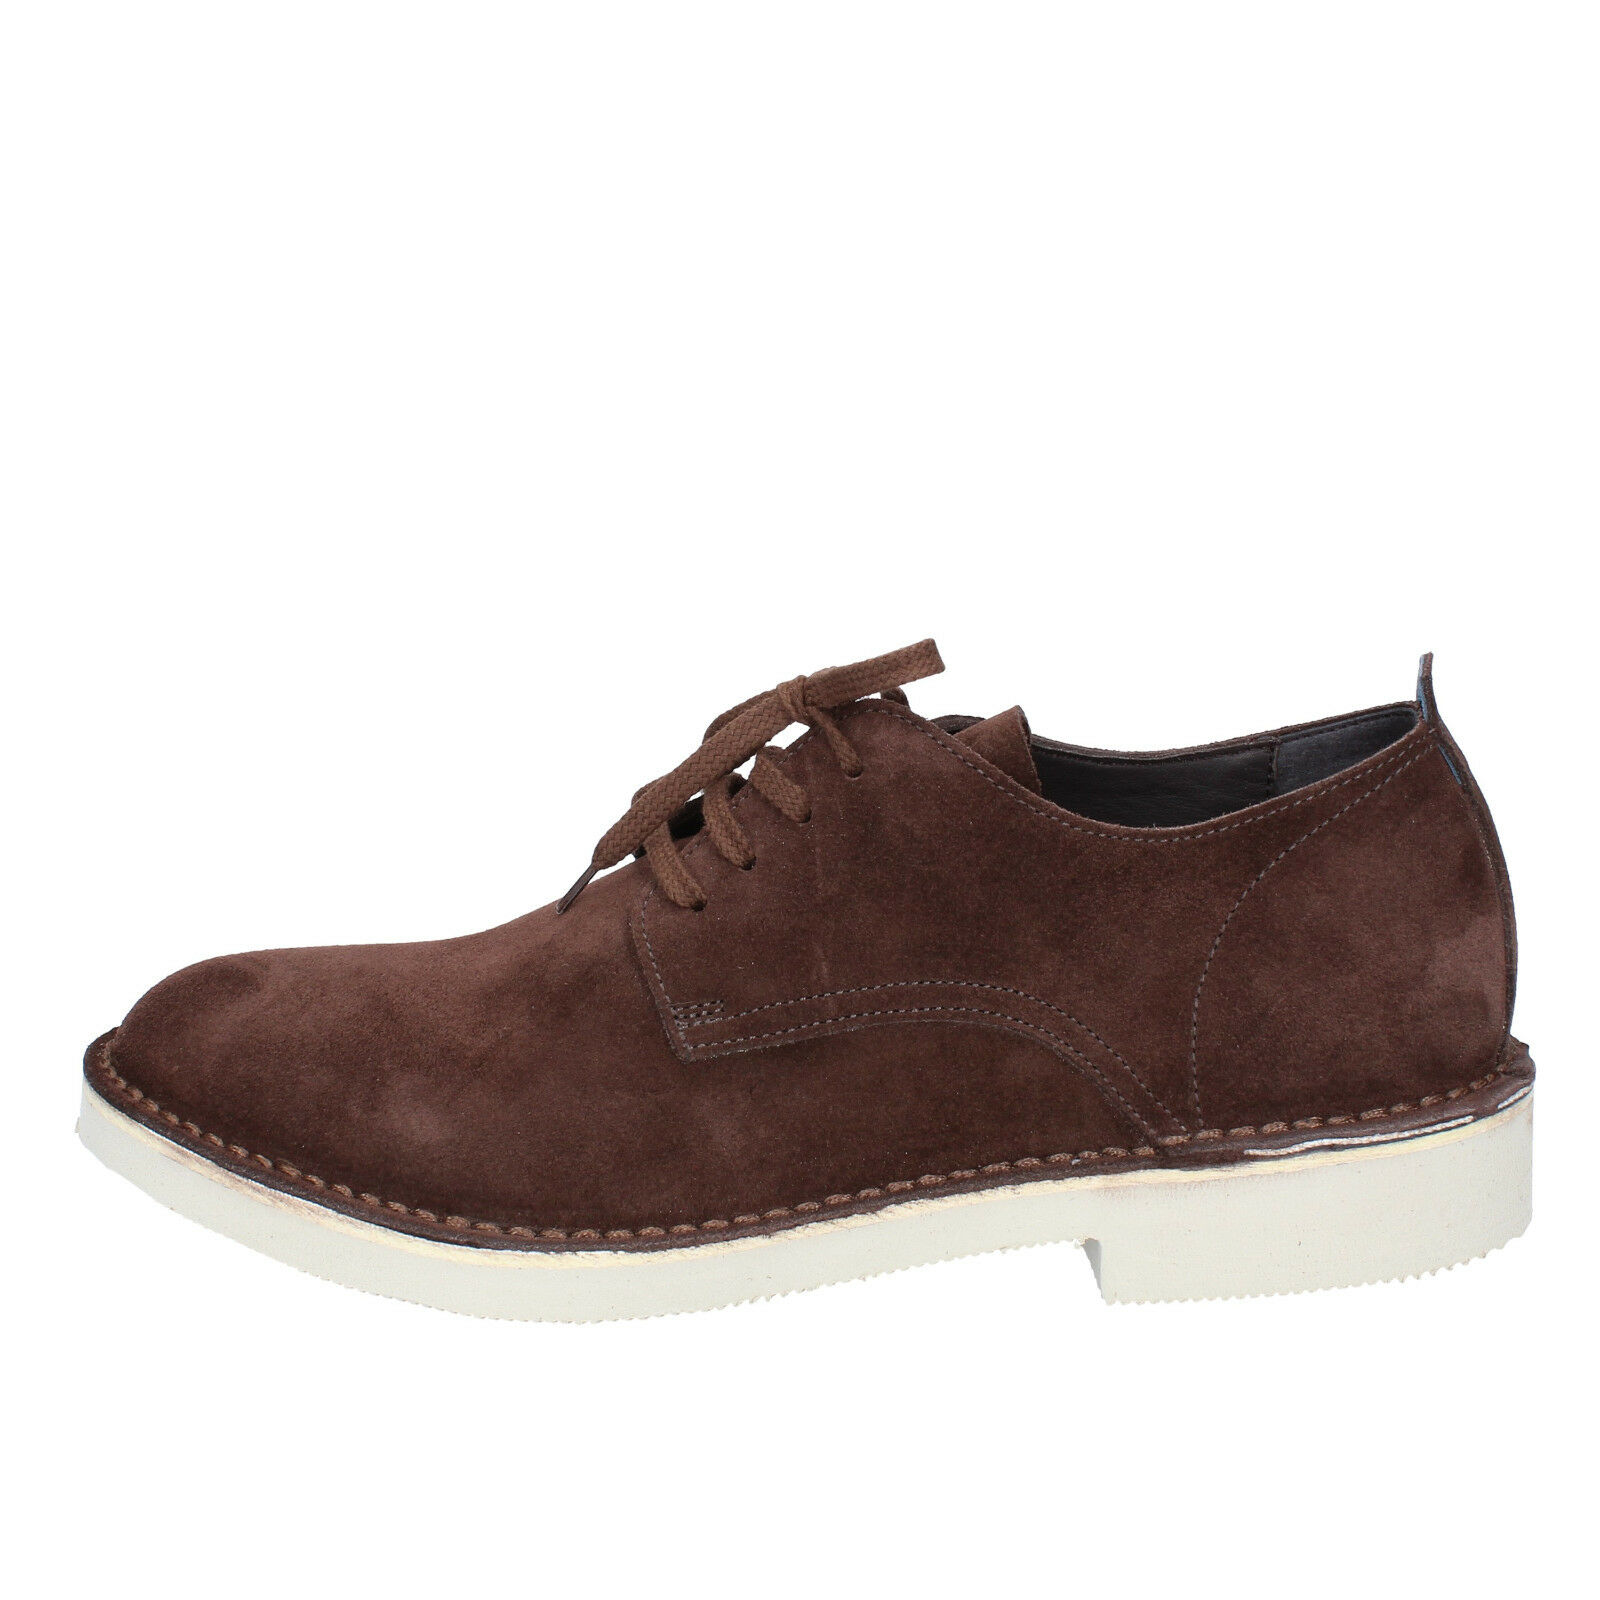 Mens shoes MOMA 9,5 (EU 43,5) elegant brown suede AB442-E